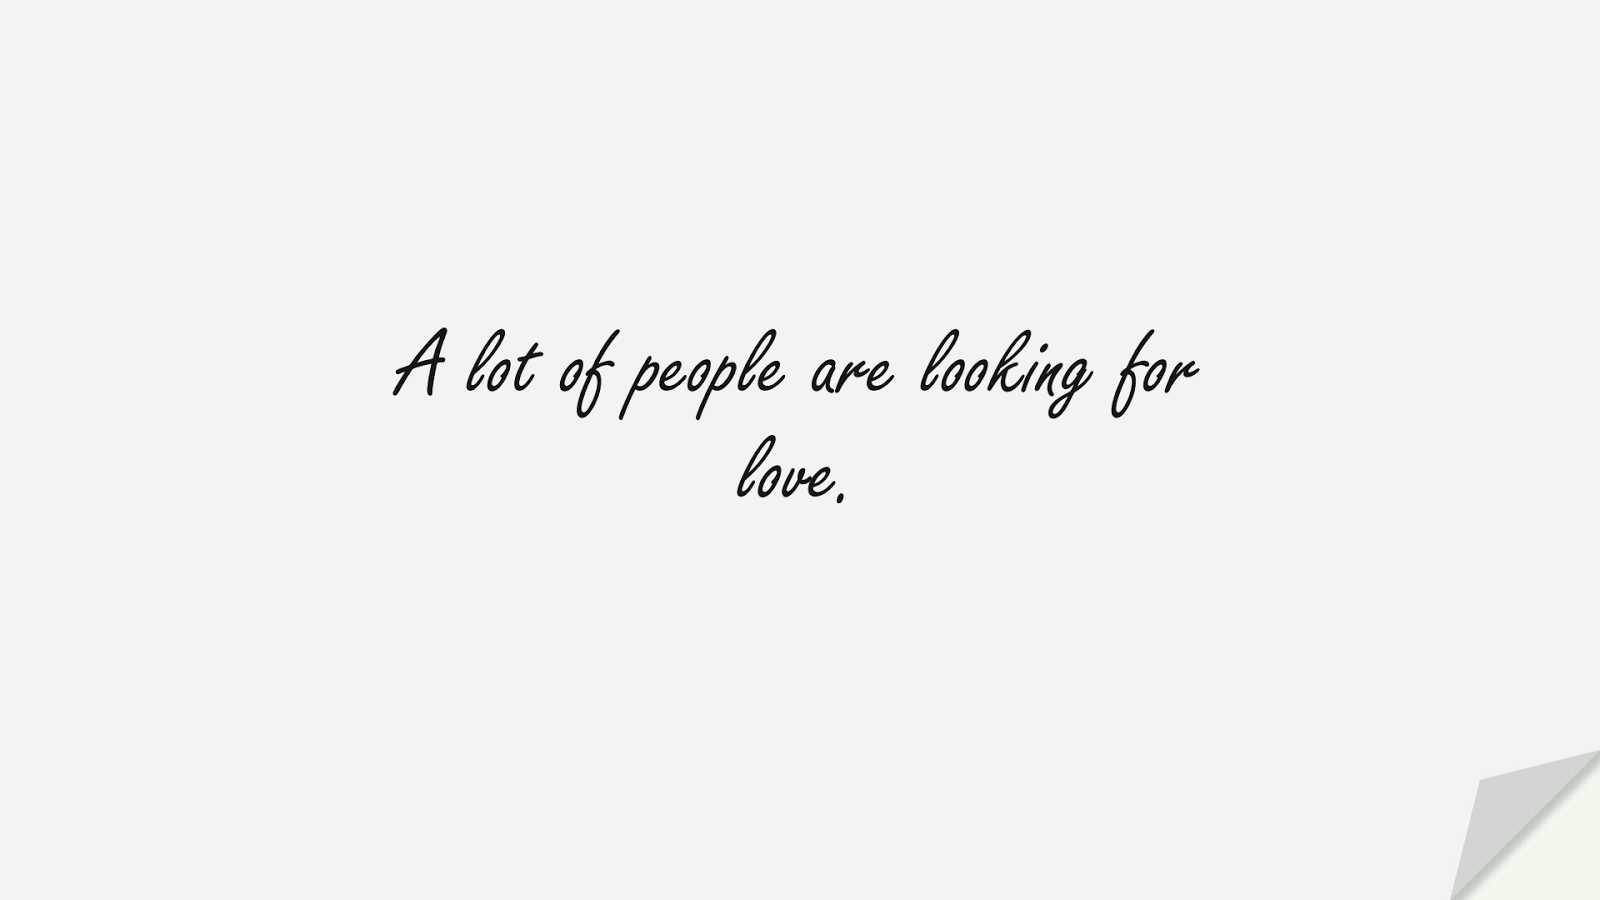 A lot of people are looking for love.FALSE